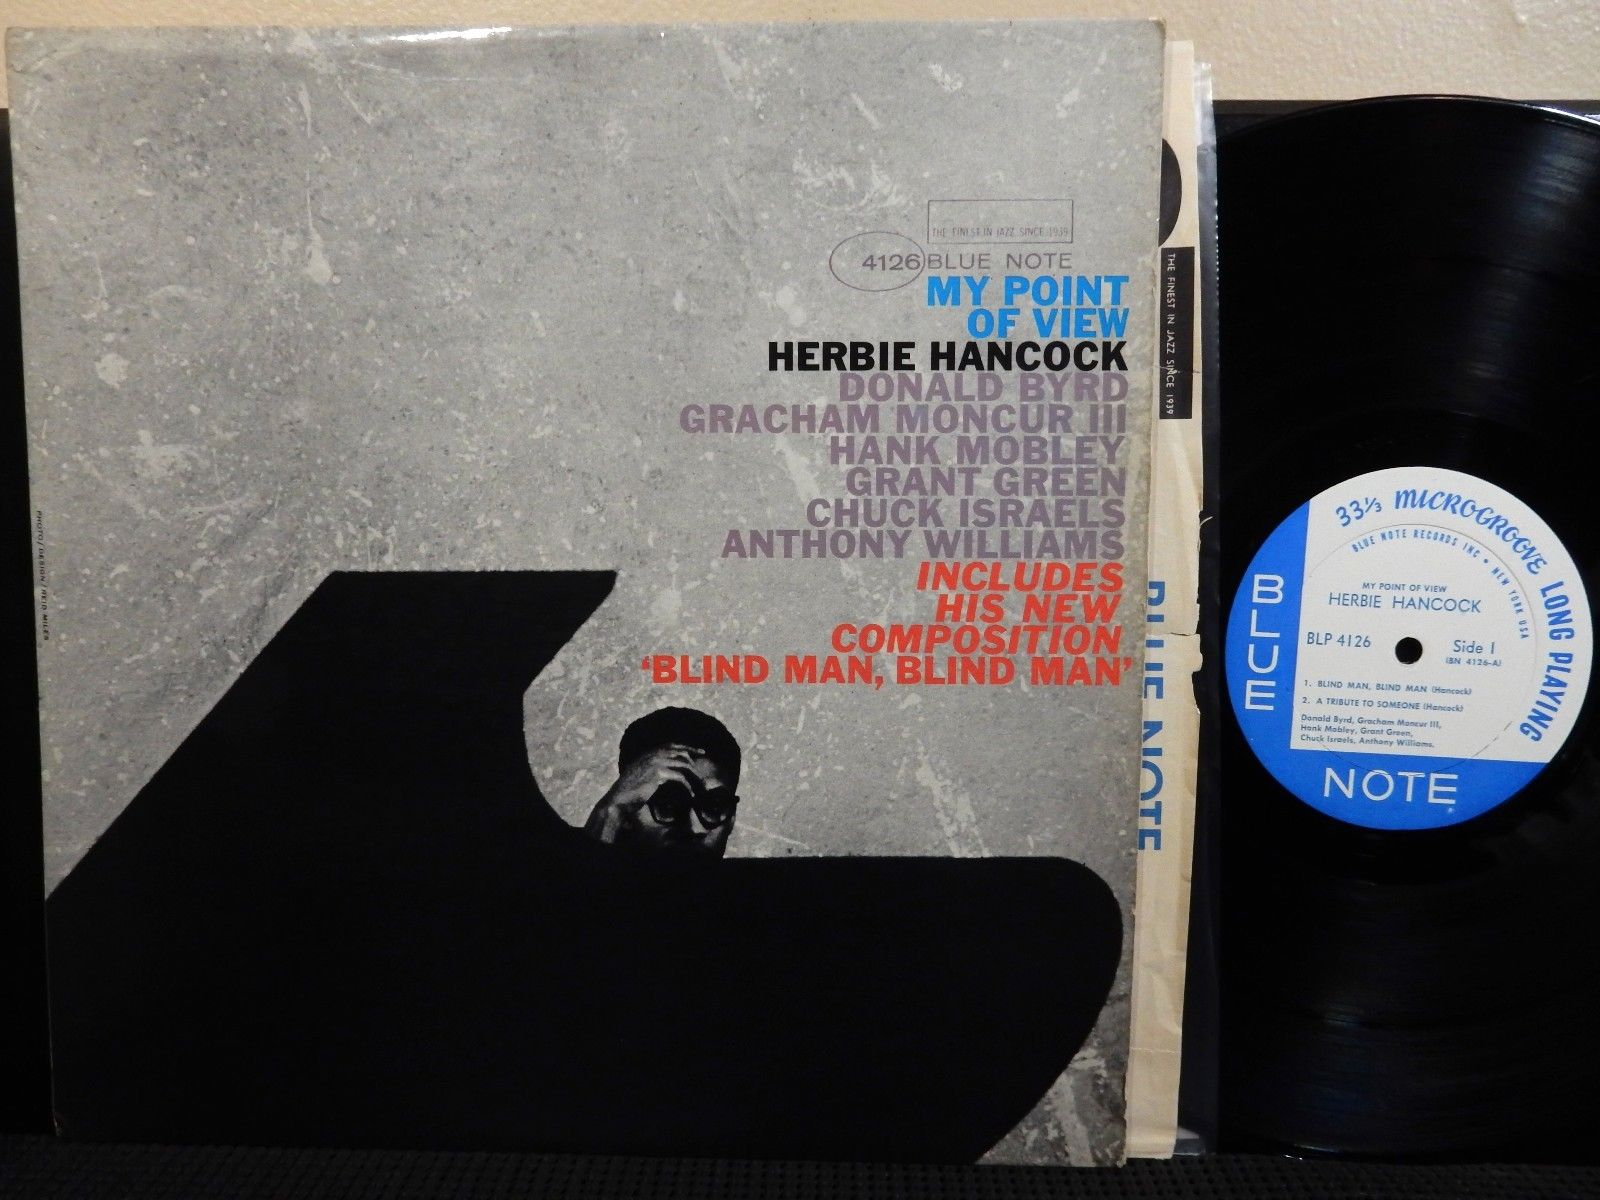 HERBIE HANCOCK MY POINT OF VIEW LP BLUE NOTE 4126 MONO NY EAR Byrd Mobley Green